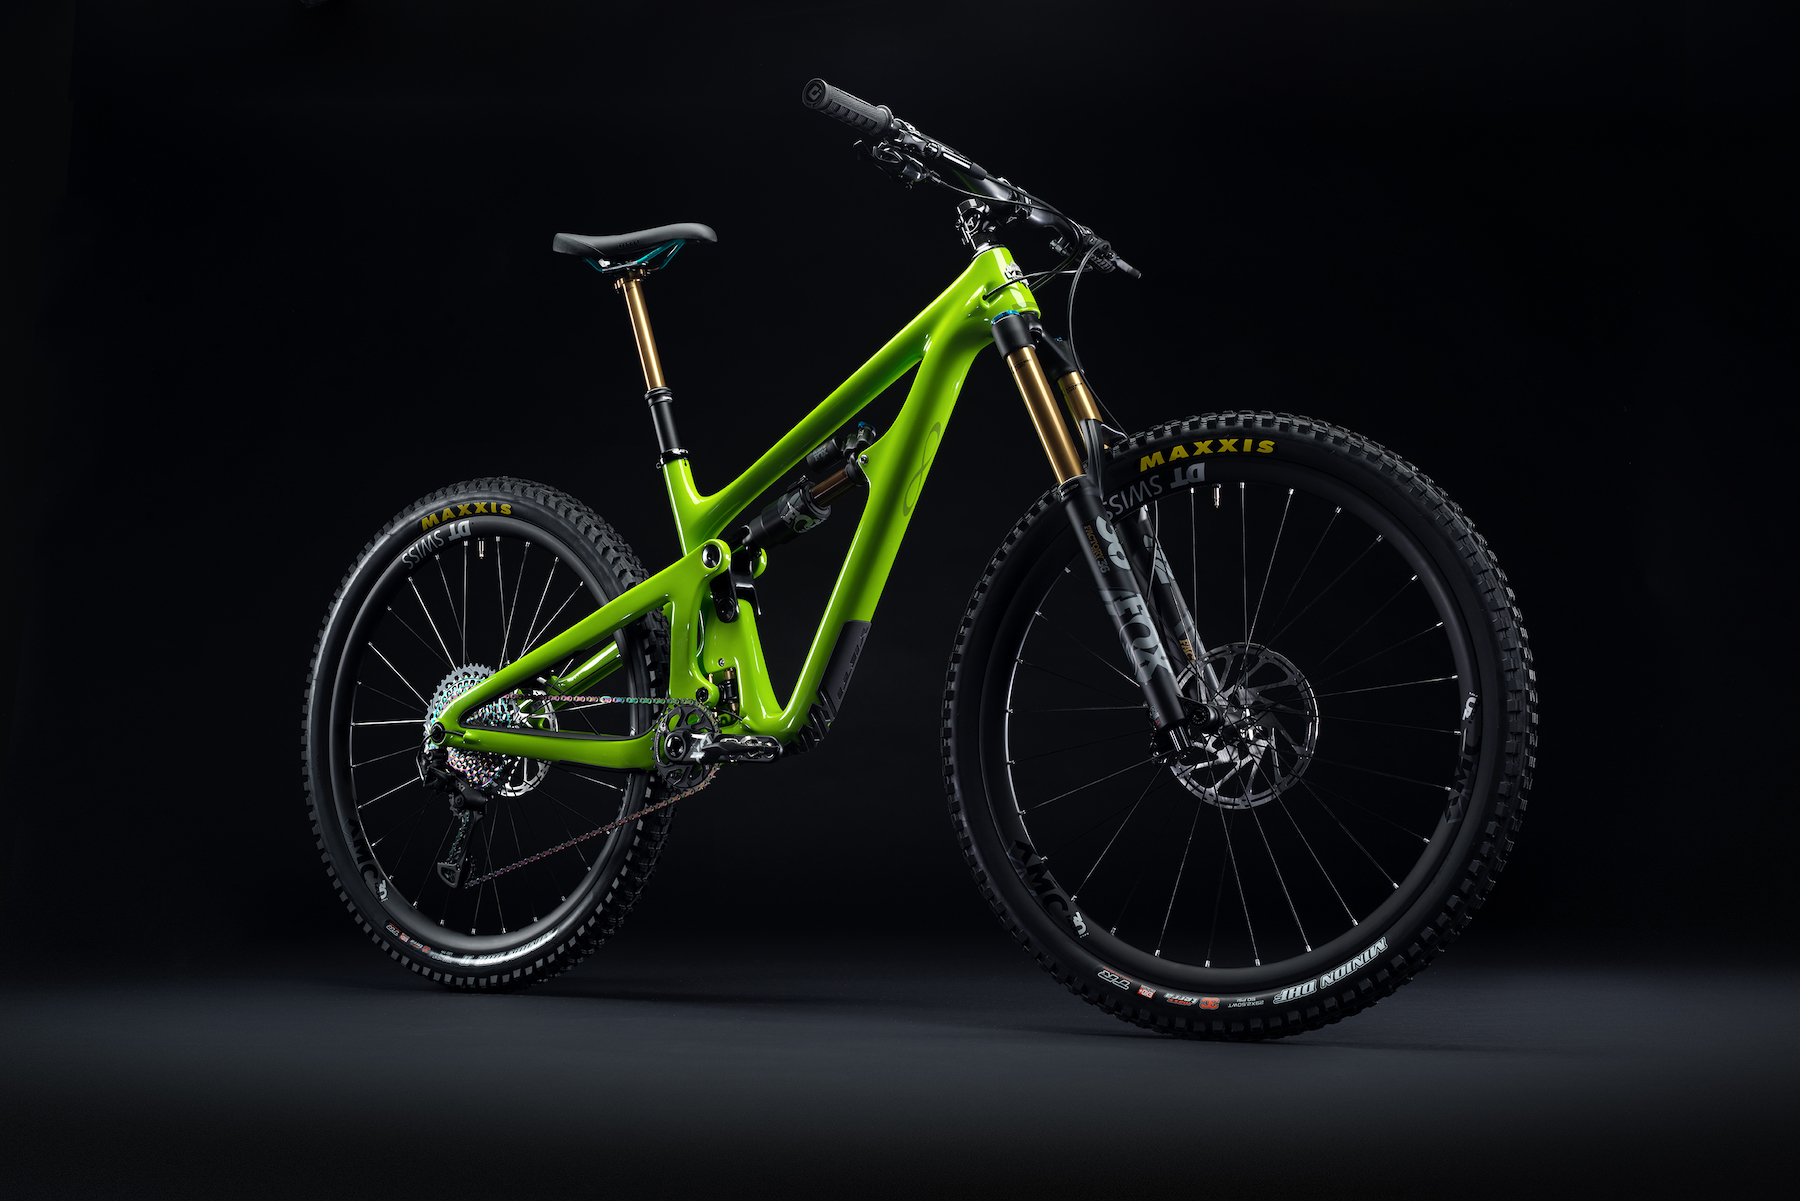 2020_YetiCycles_SB150_Dark_Complete_Verde_HR 2